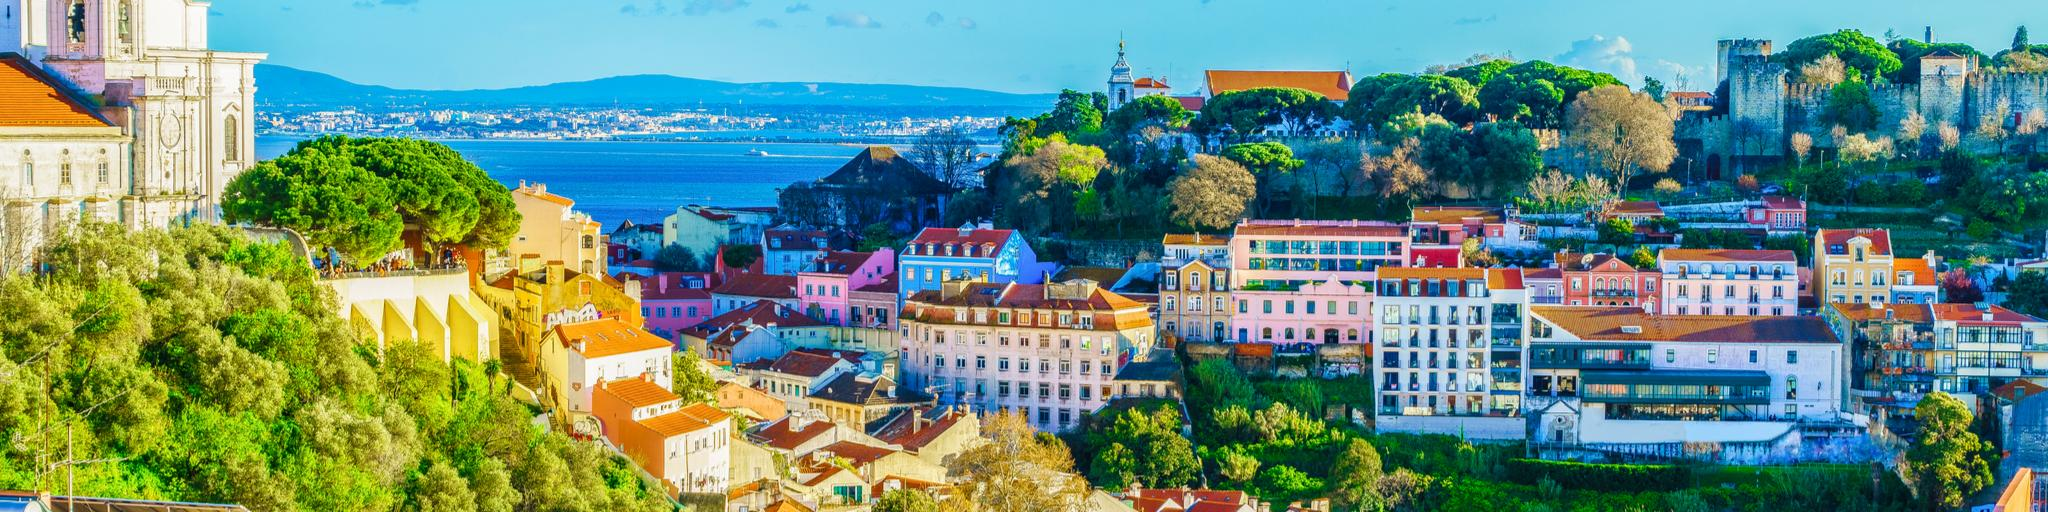 View over colourful rooftops in Lisbon